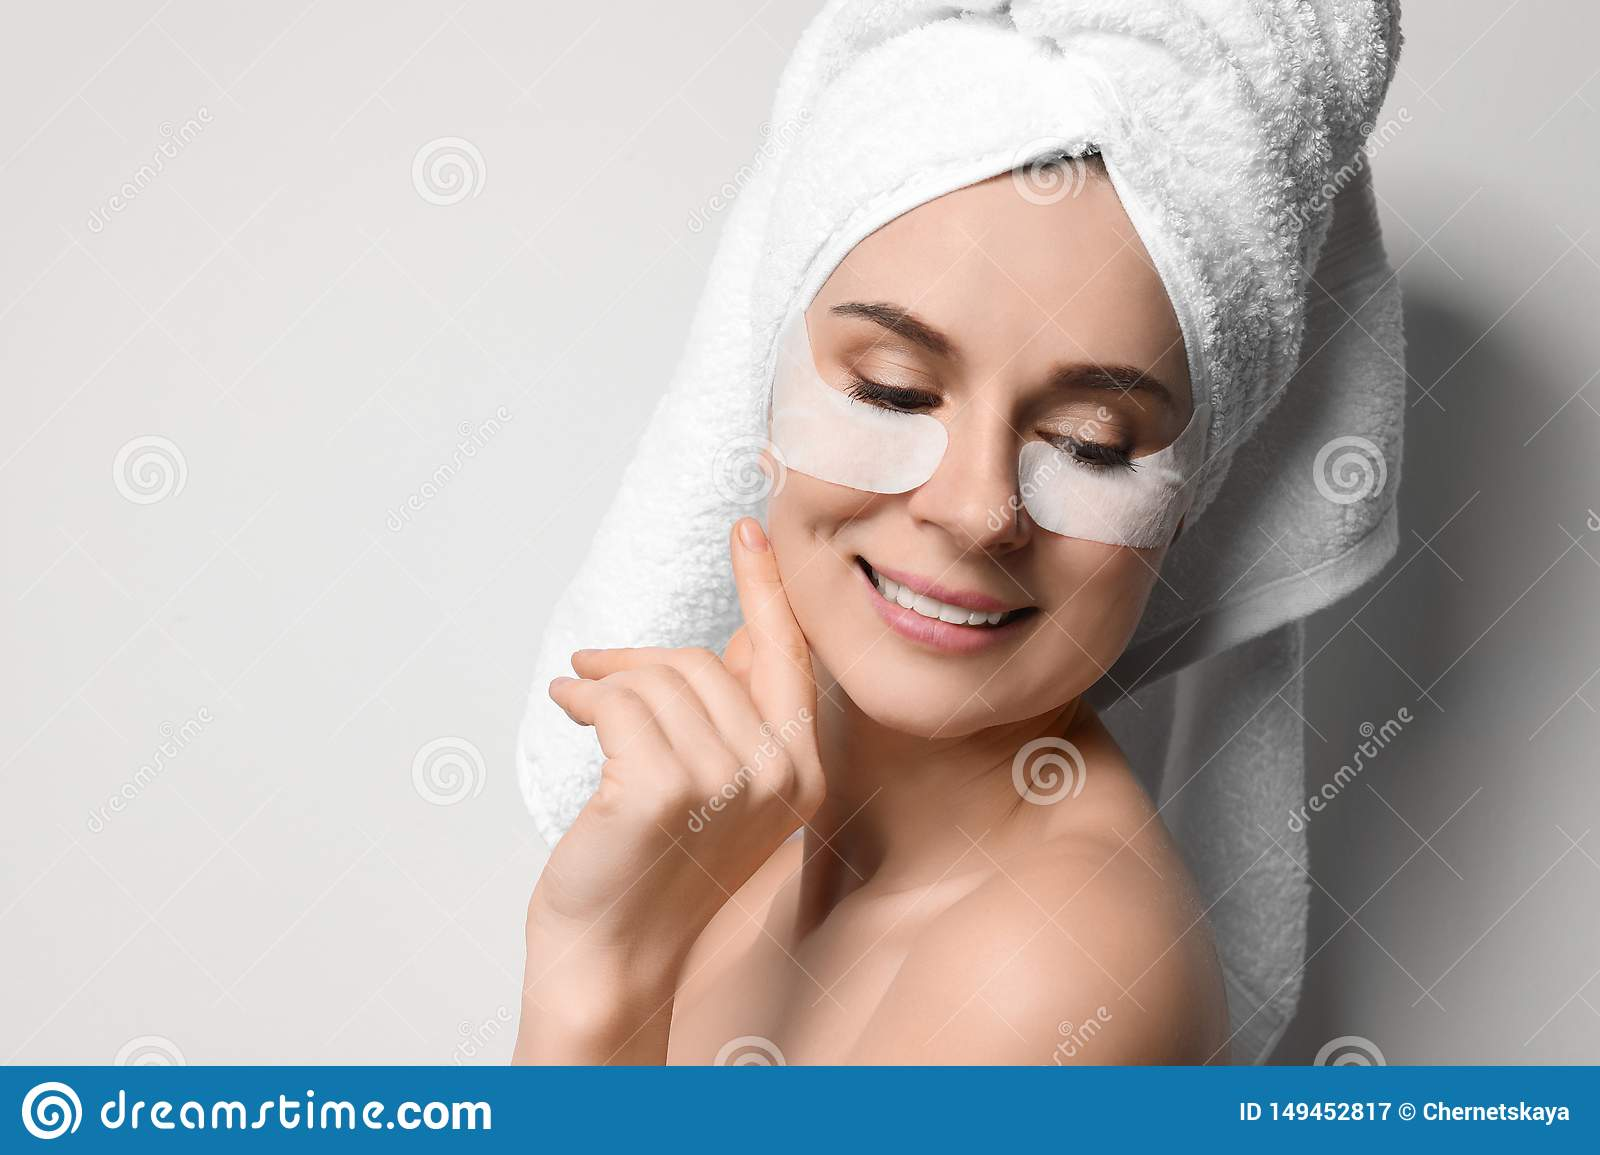 Beautiful woman with eye patches against light background